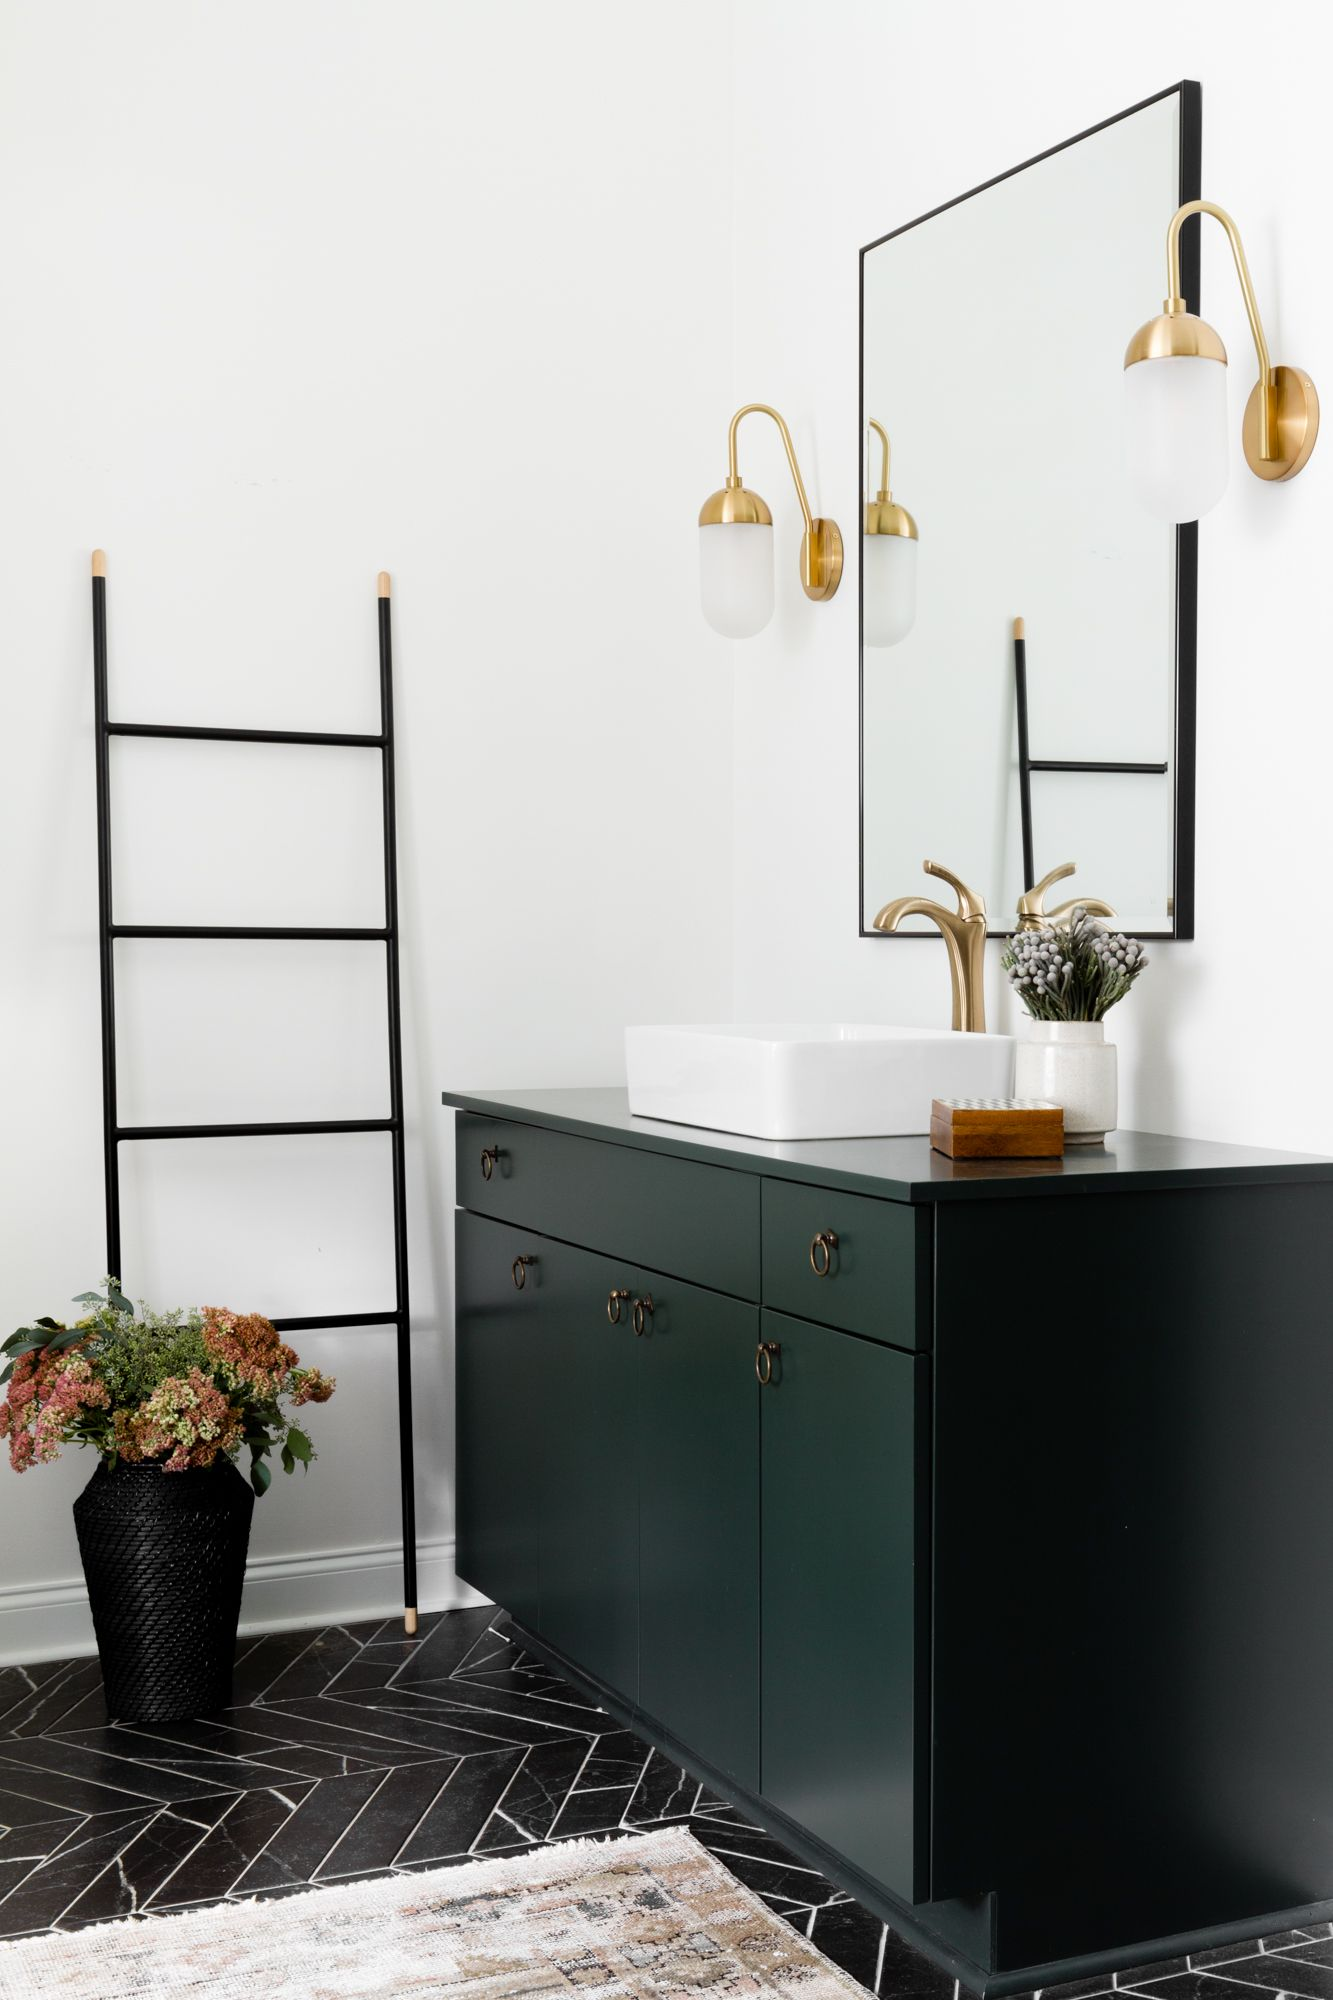 Modern Bathroom With Emerald Green Vanity Vintage Rug And Black And White Tile Photography Joseph Bradsh Dark Green Bathrooms Green Tile Bathroom Green Vanity [ 2000 x 1333 Pixel ]